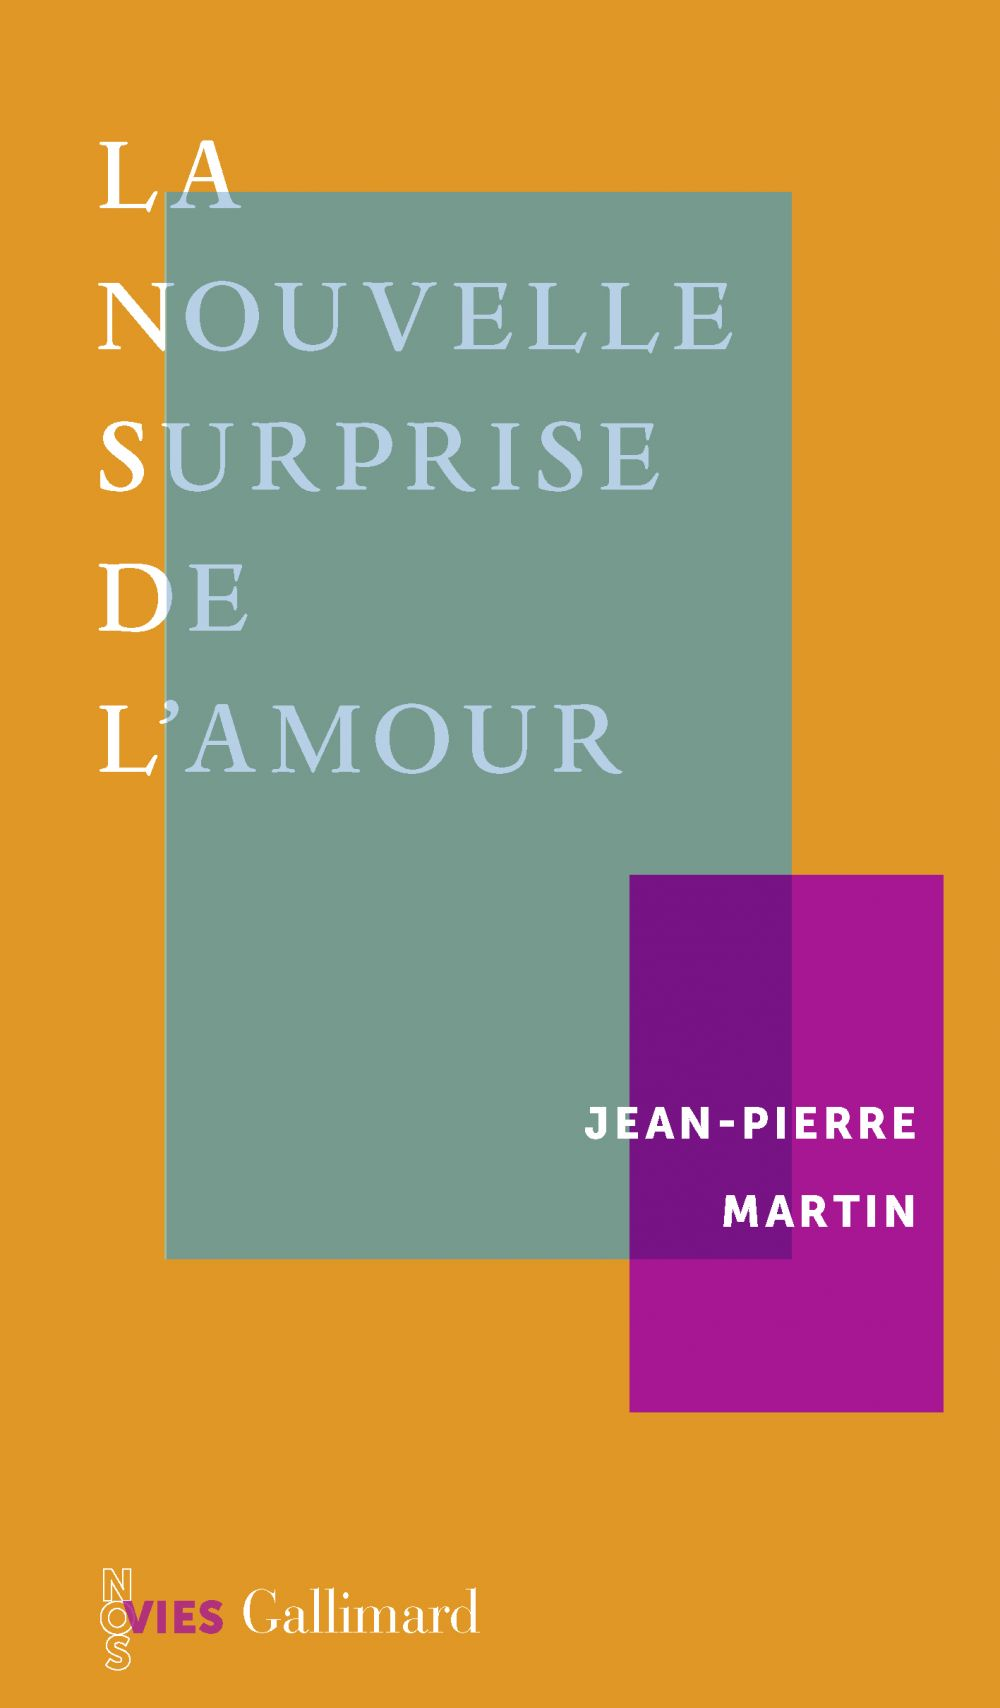 La nouvelle surprise de l'amour